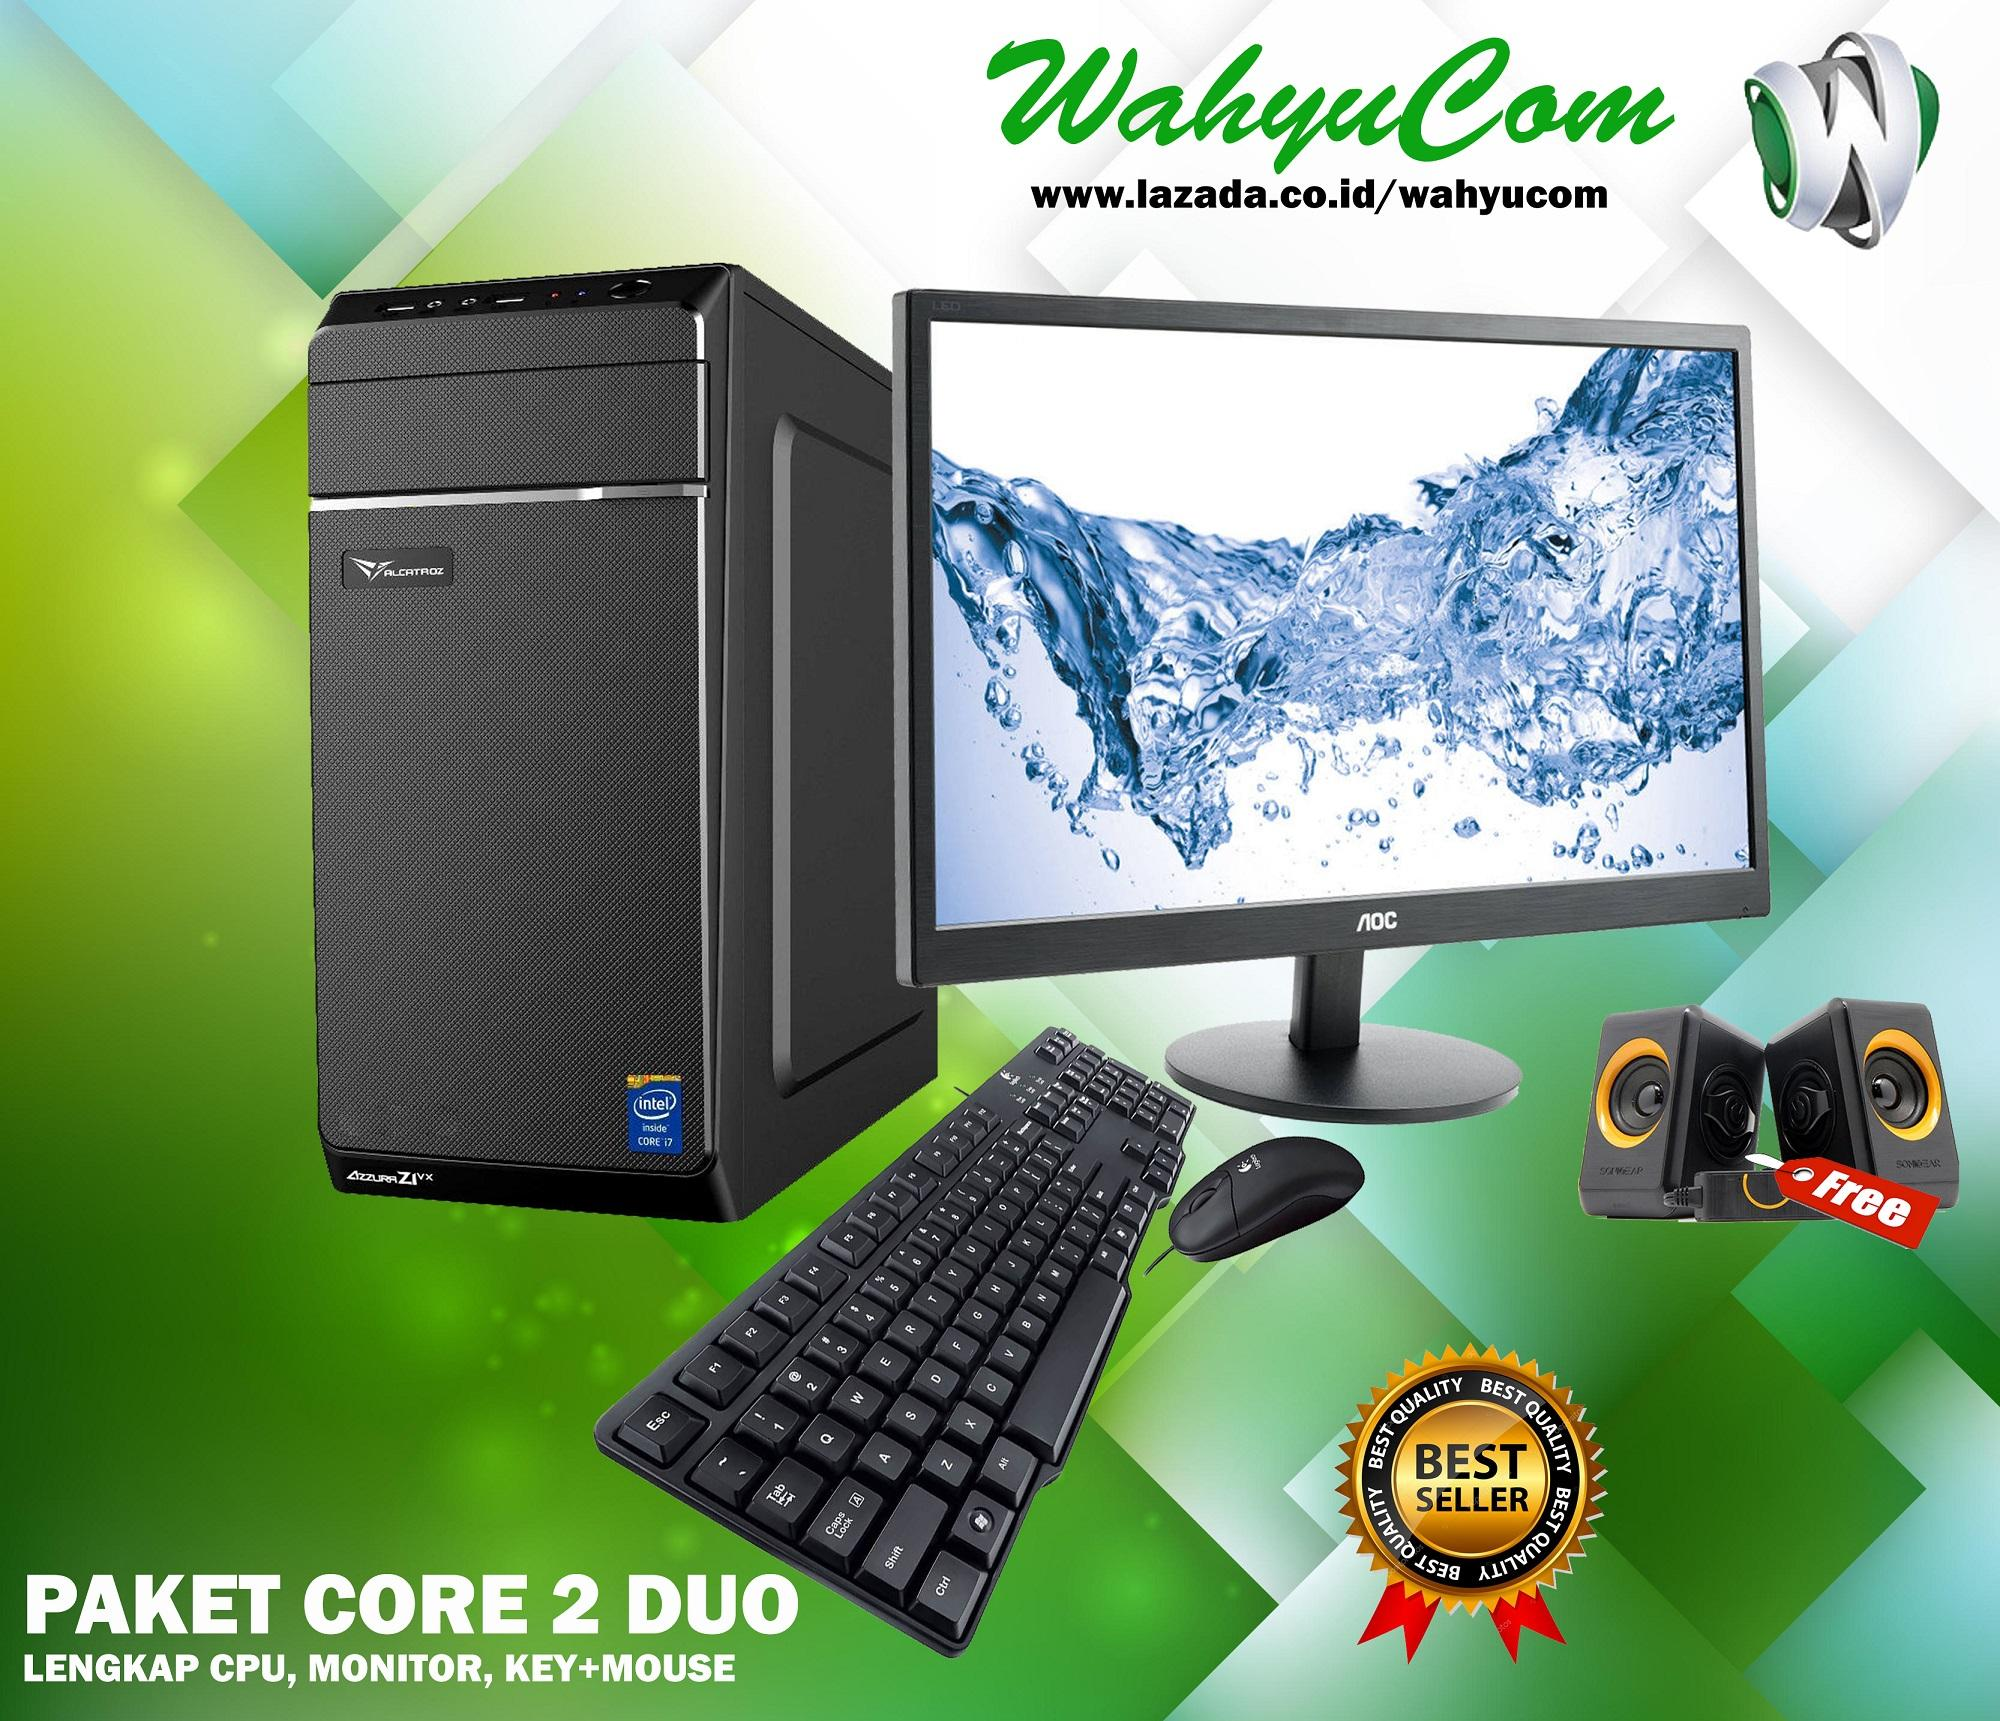 Komputer Core 2 Duo By Wahyucom.